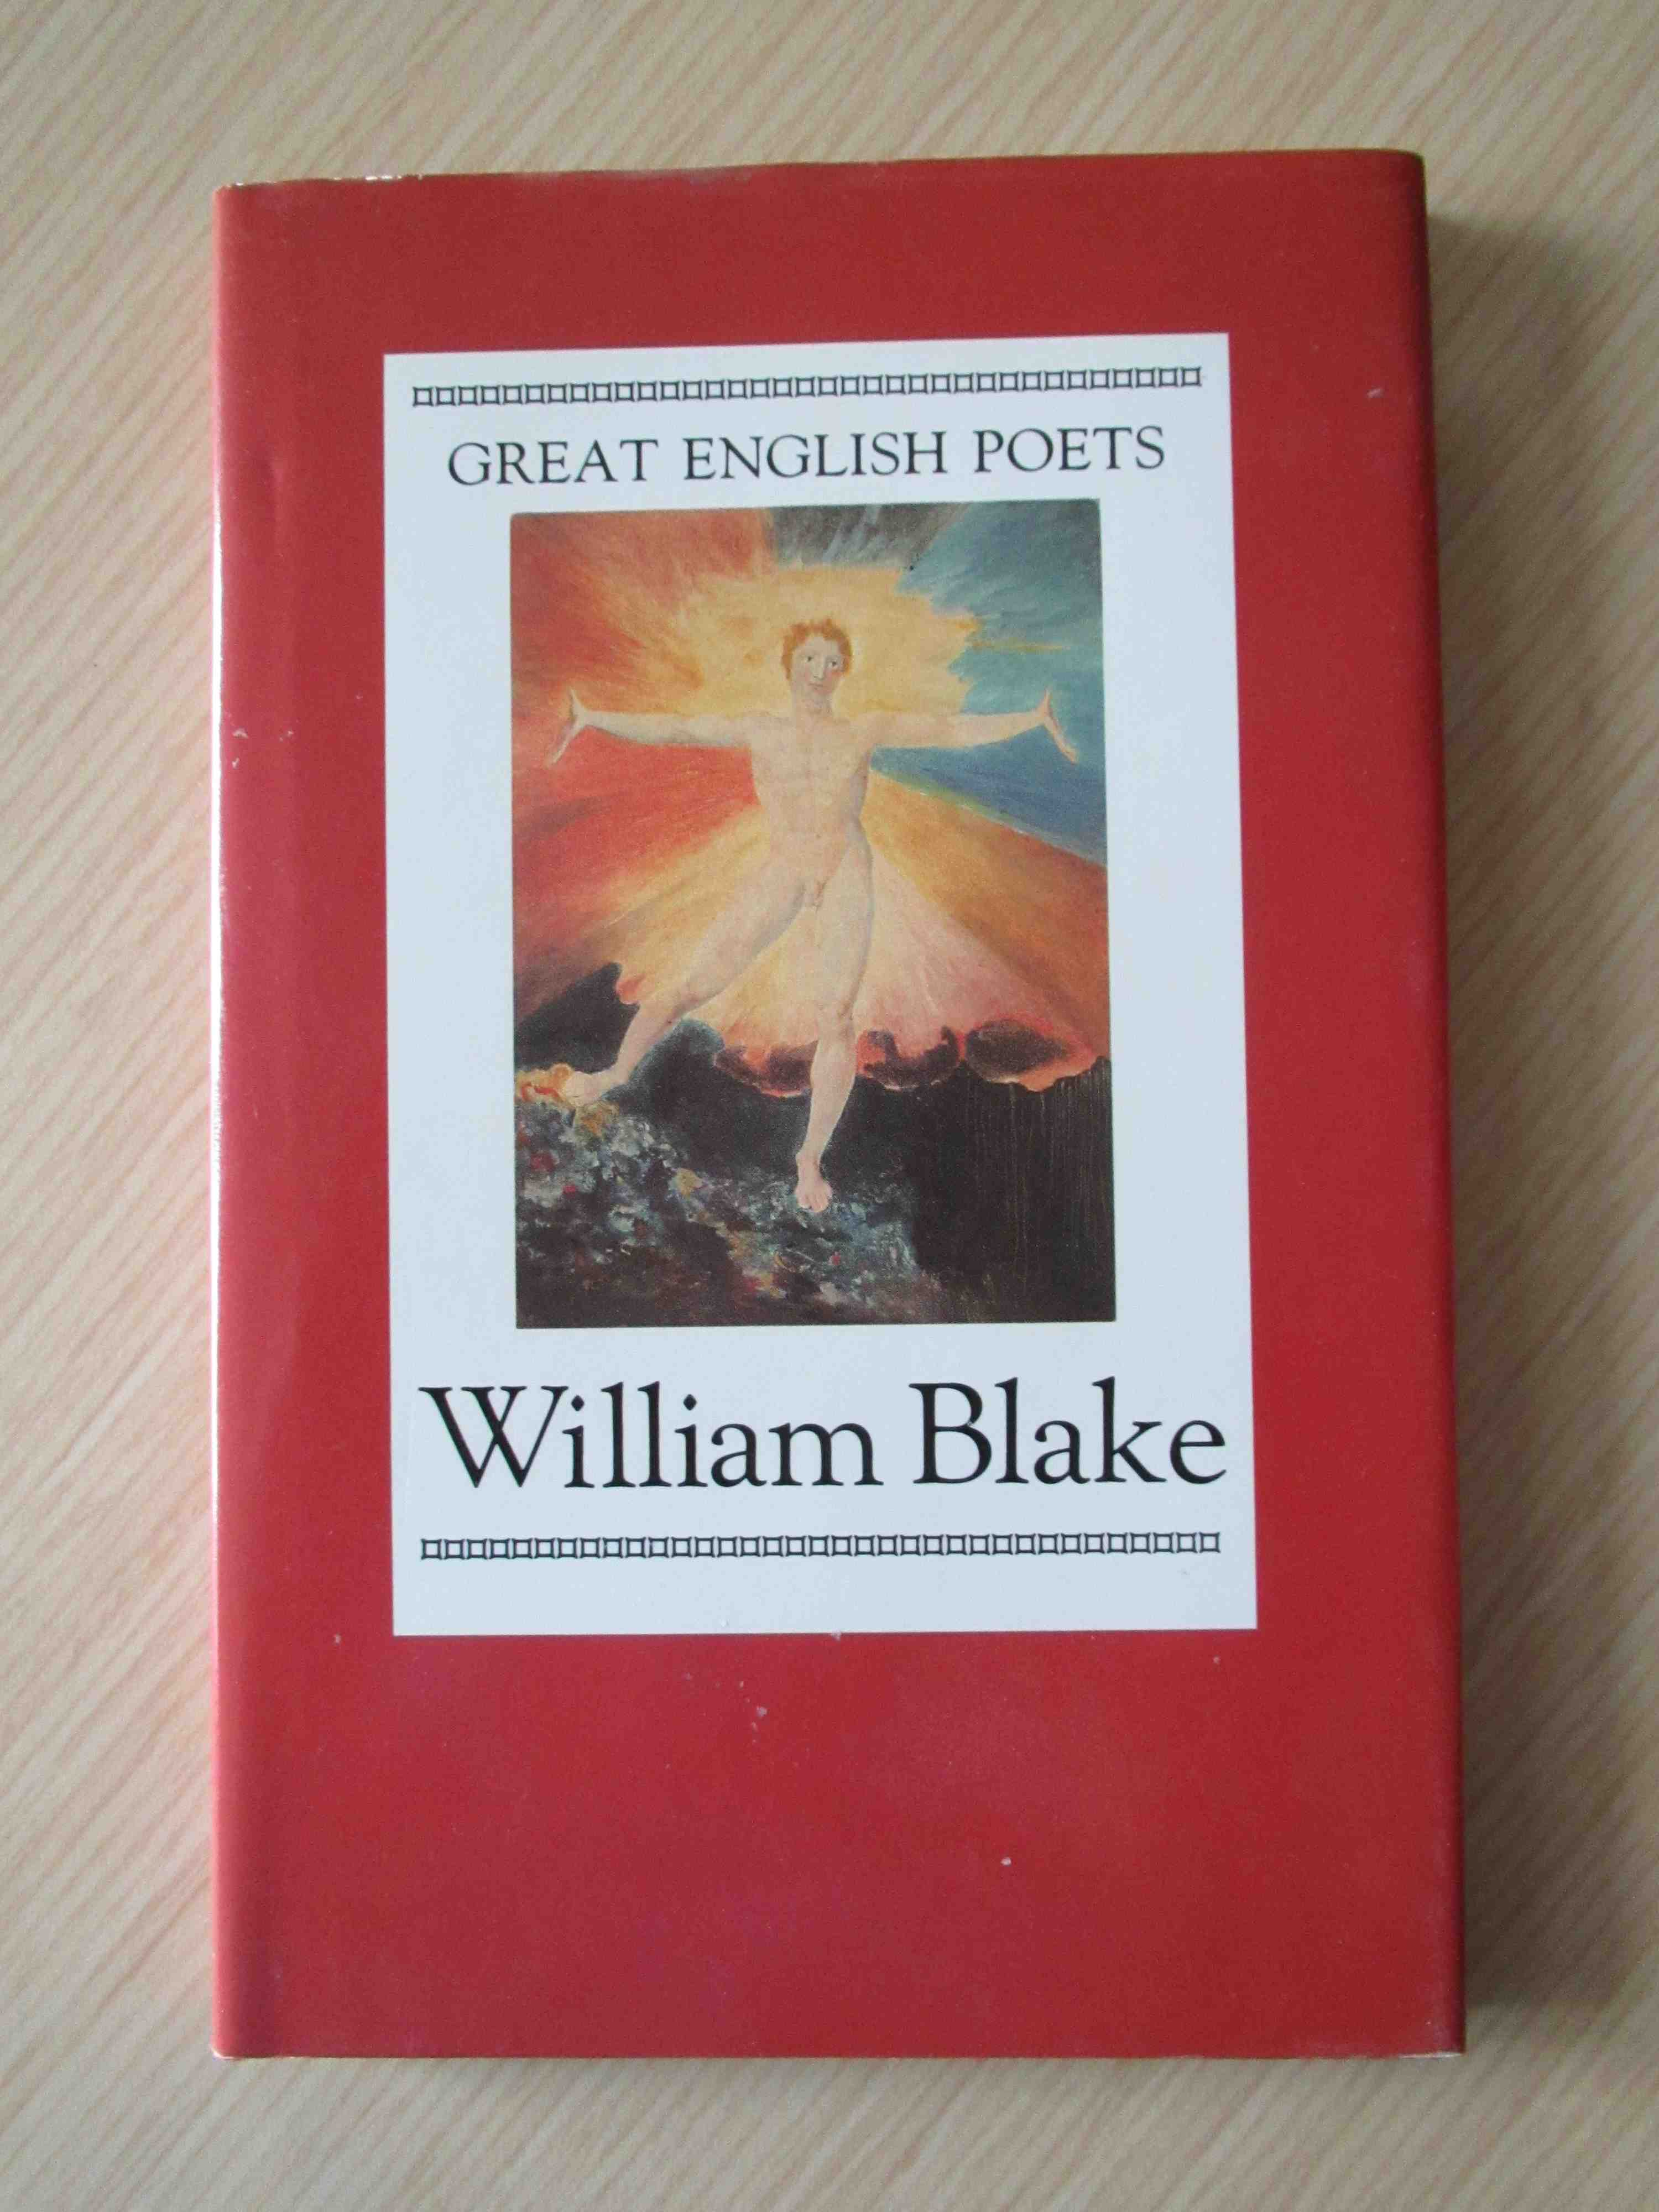 a thin volume of William Blake